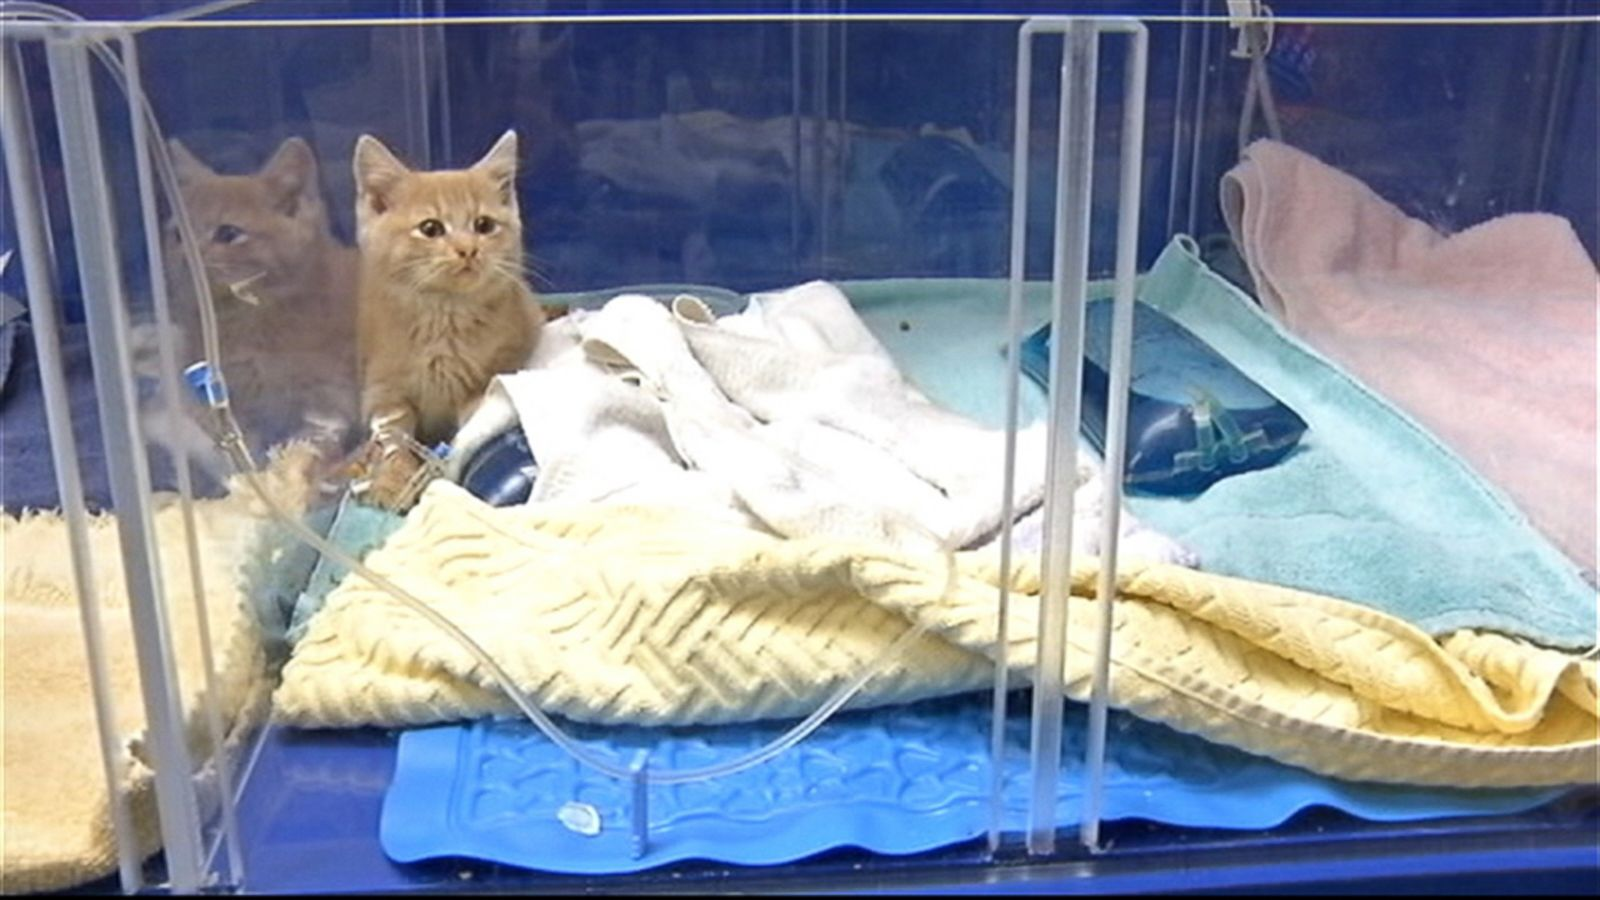 Meet Elsa, the Kitten Who Survived Being Frozen - ABC News